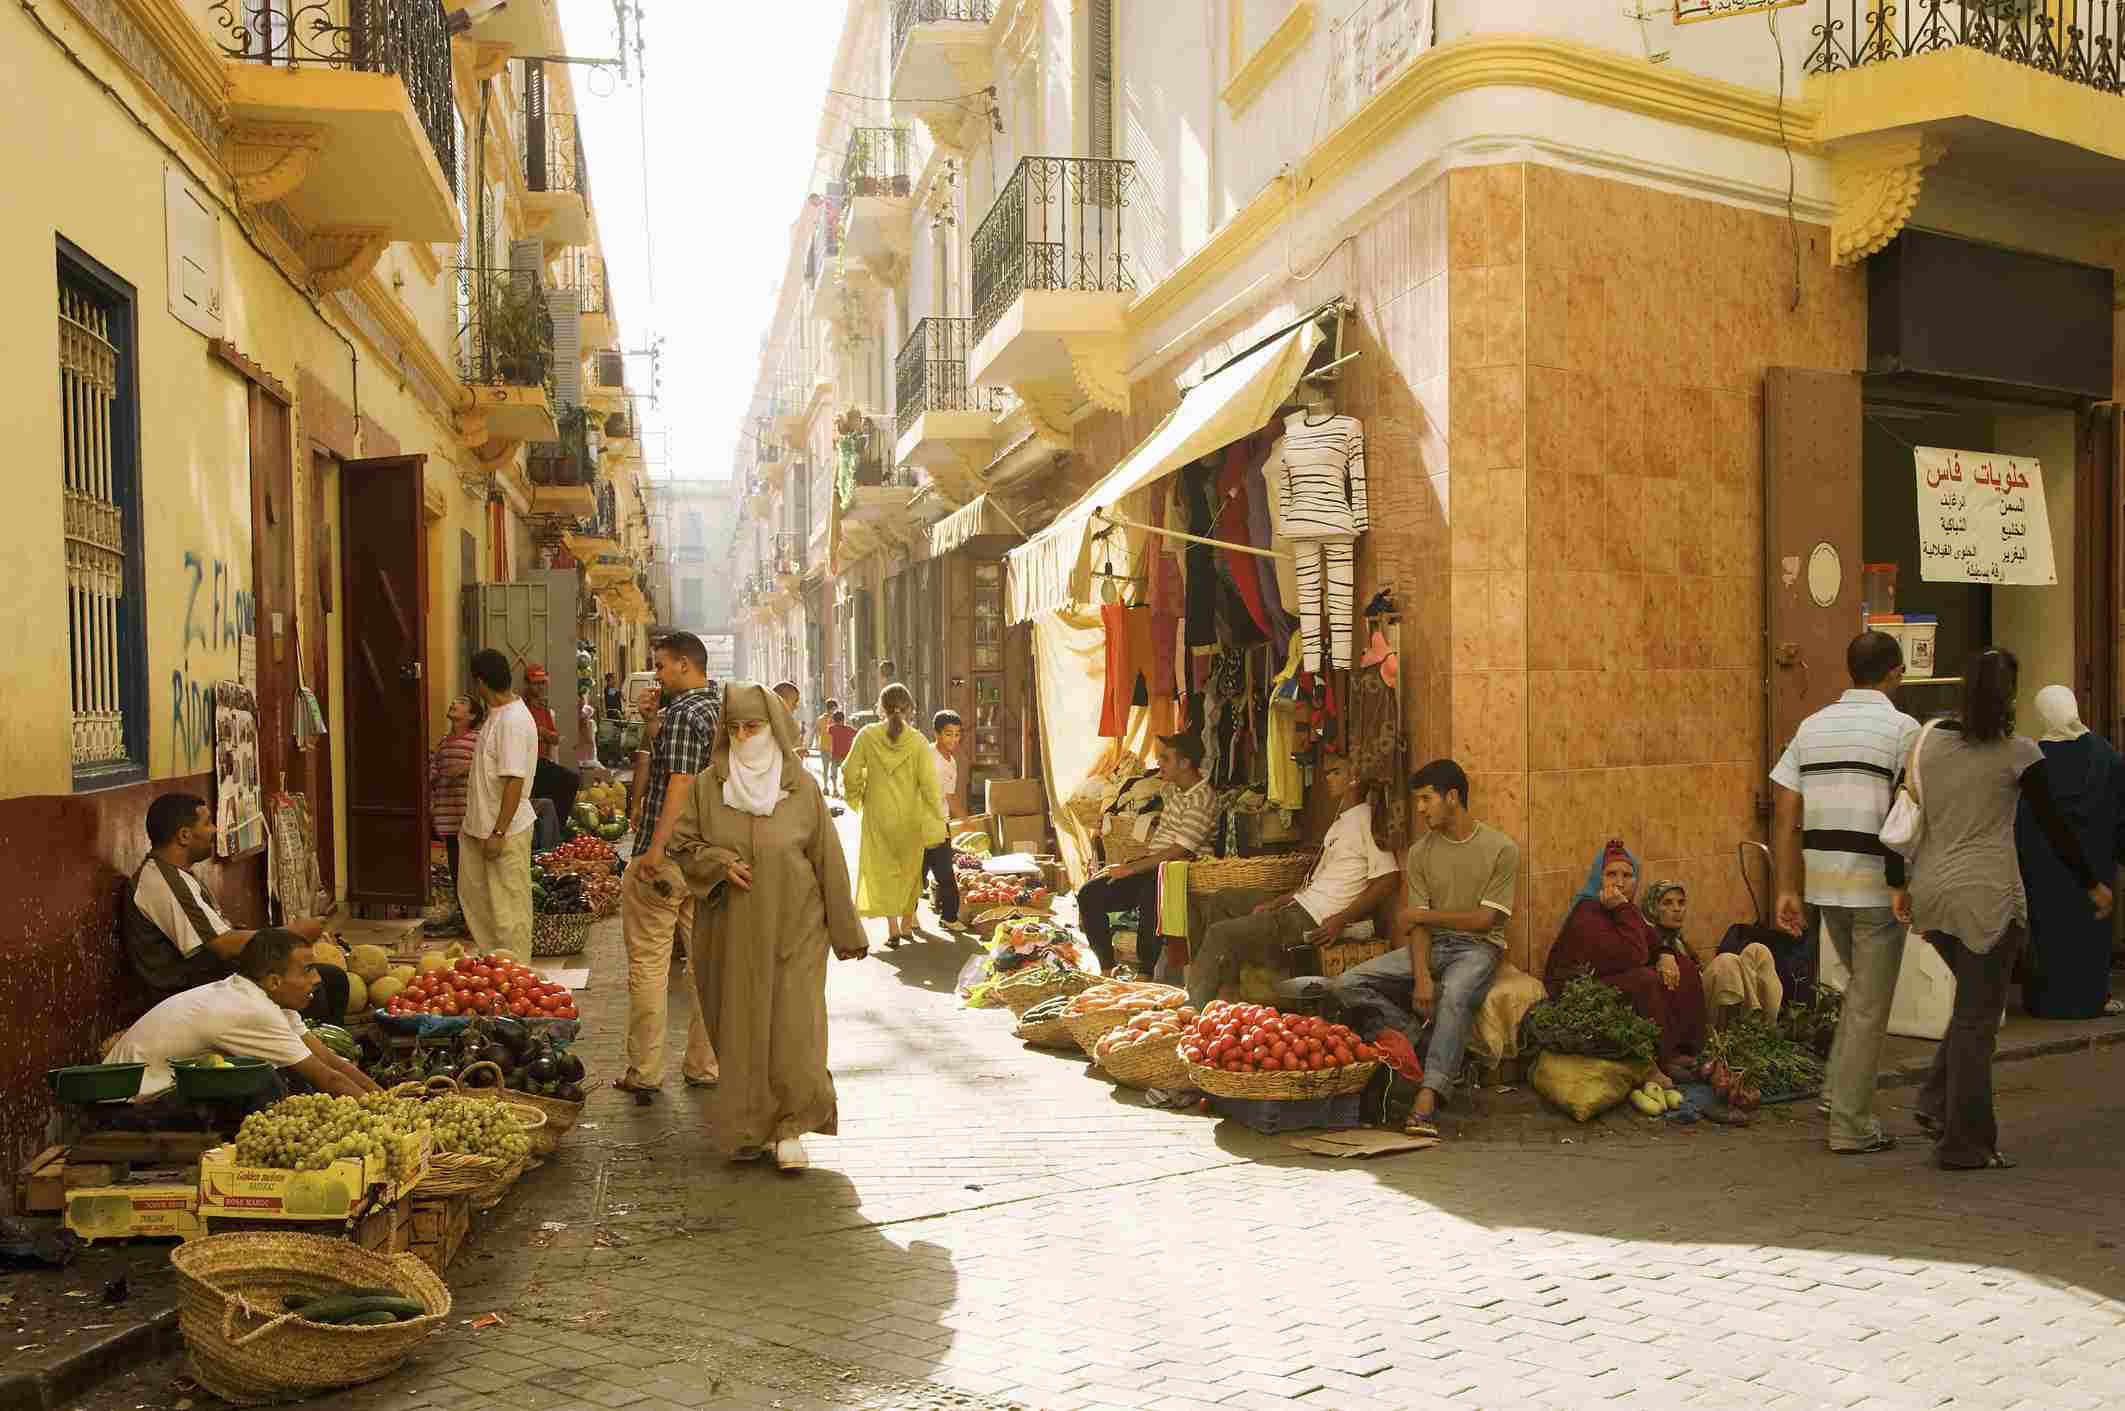 People on street of Tangier, Morocco